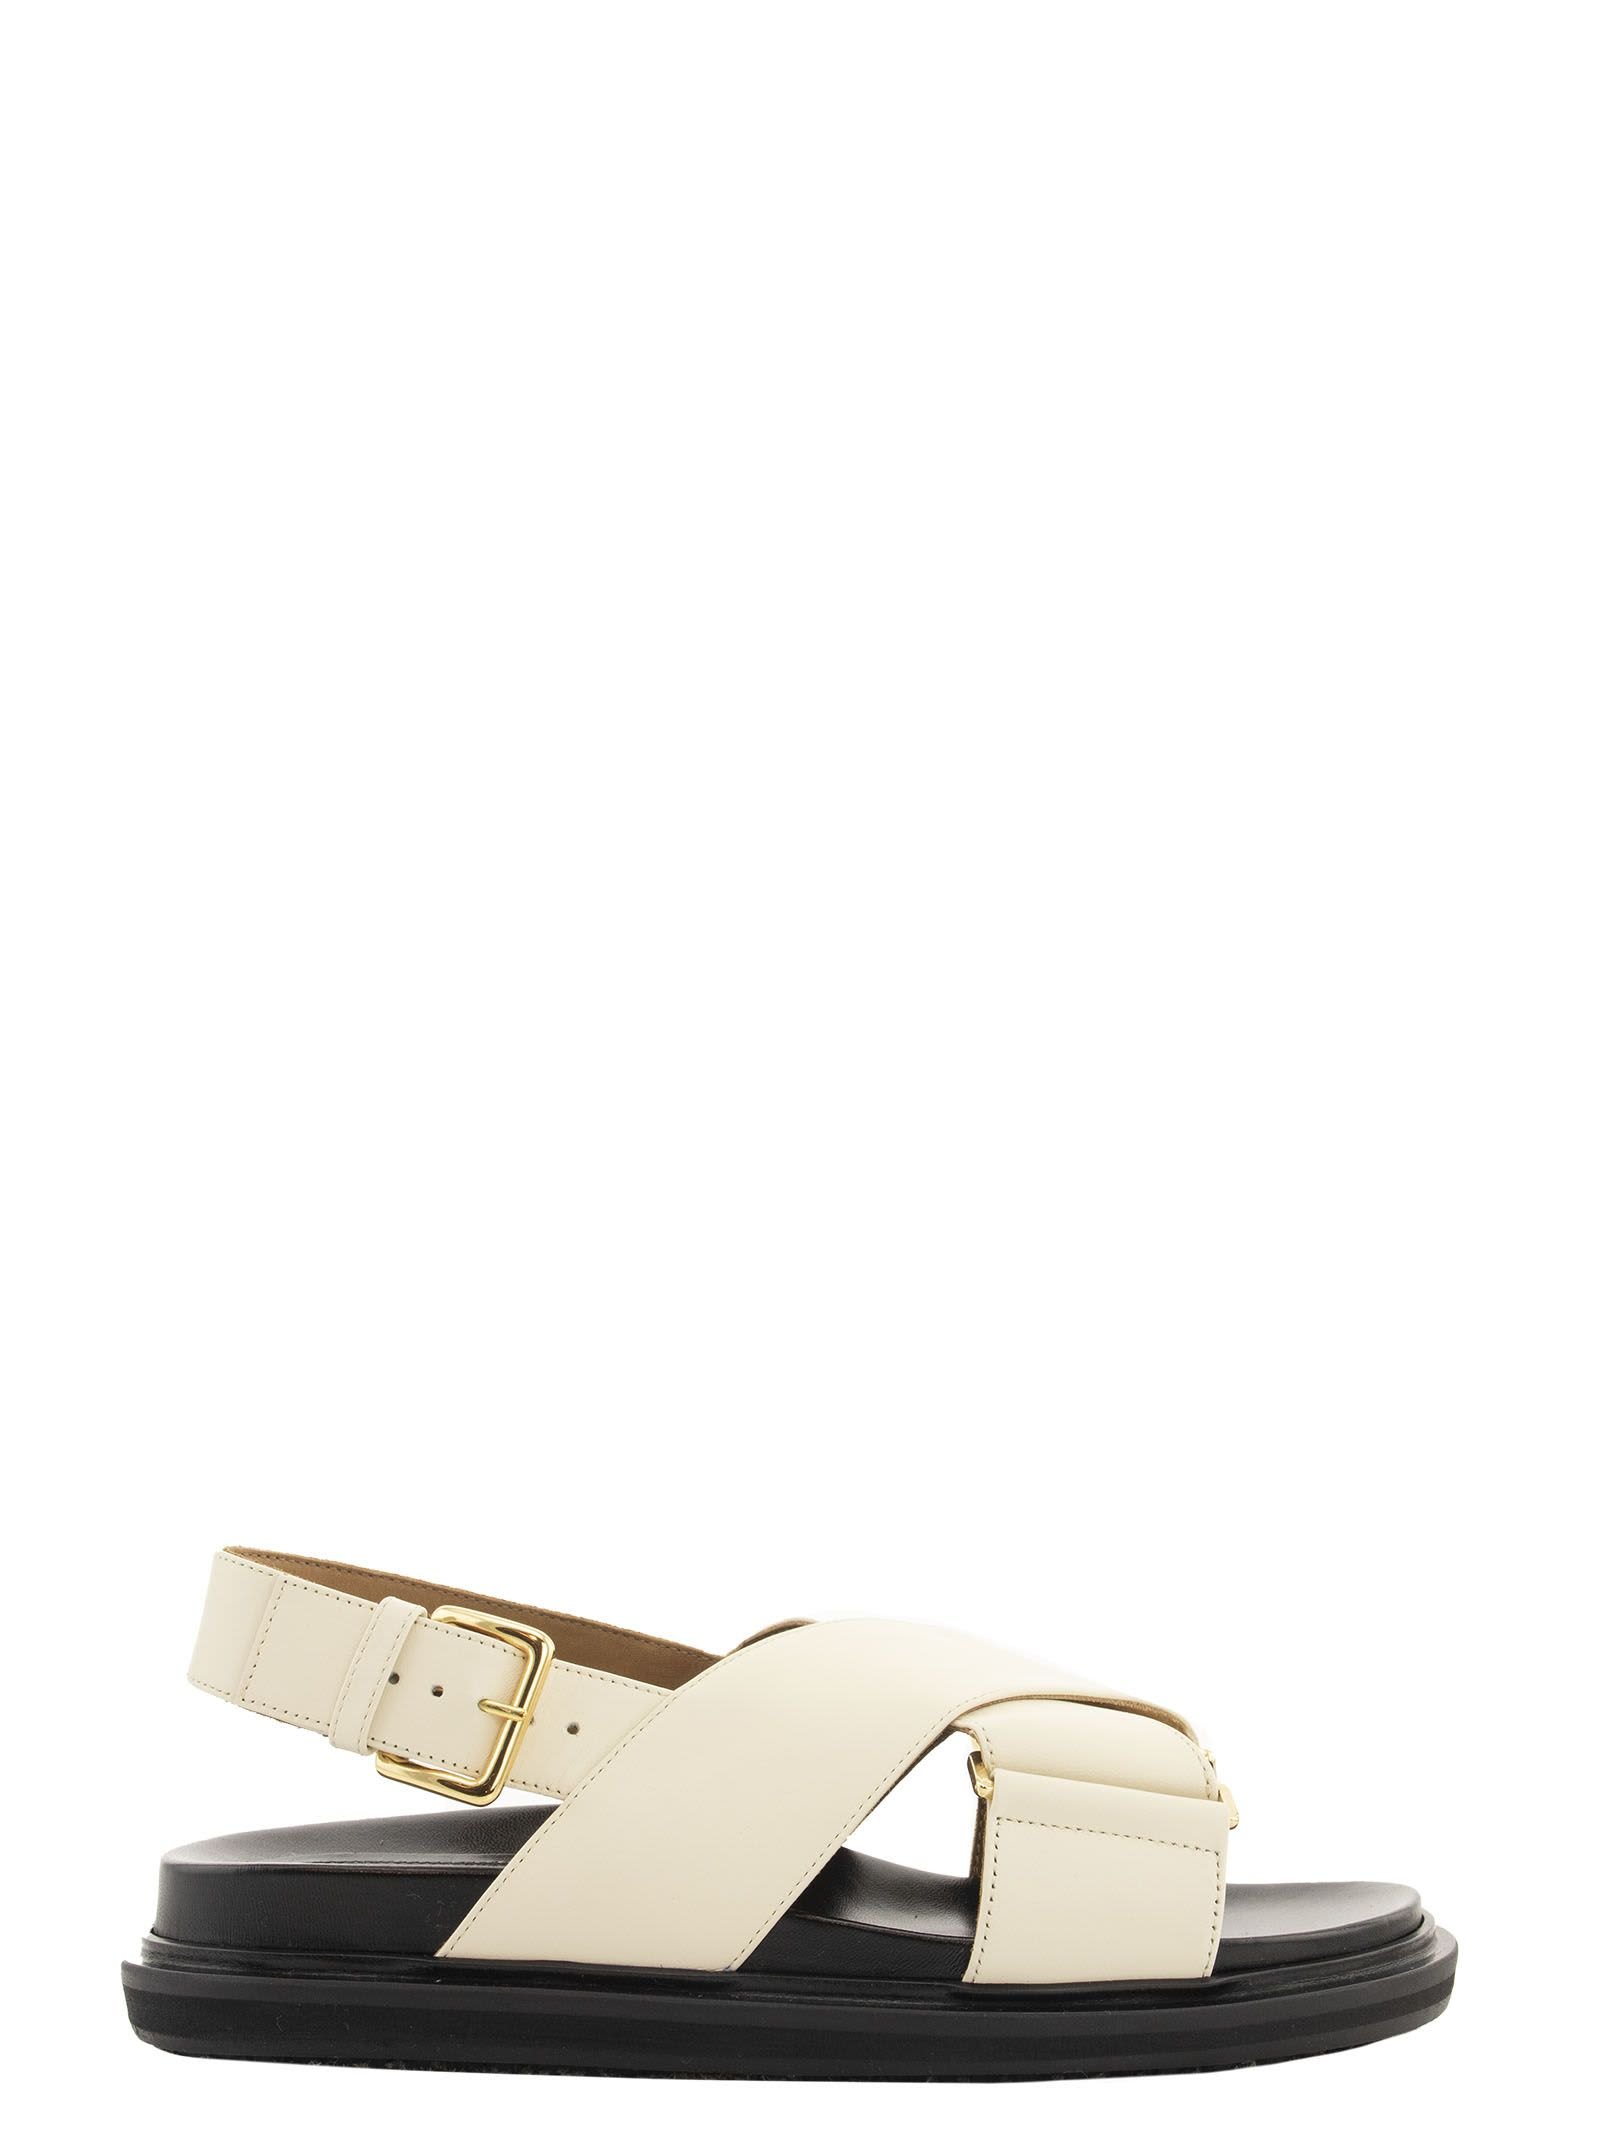 Marni Criss-cross Fussbett In White Leather Sandals